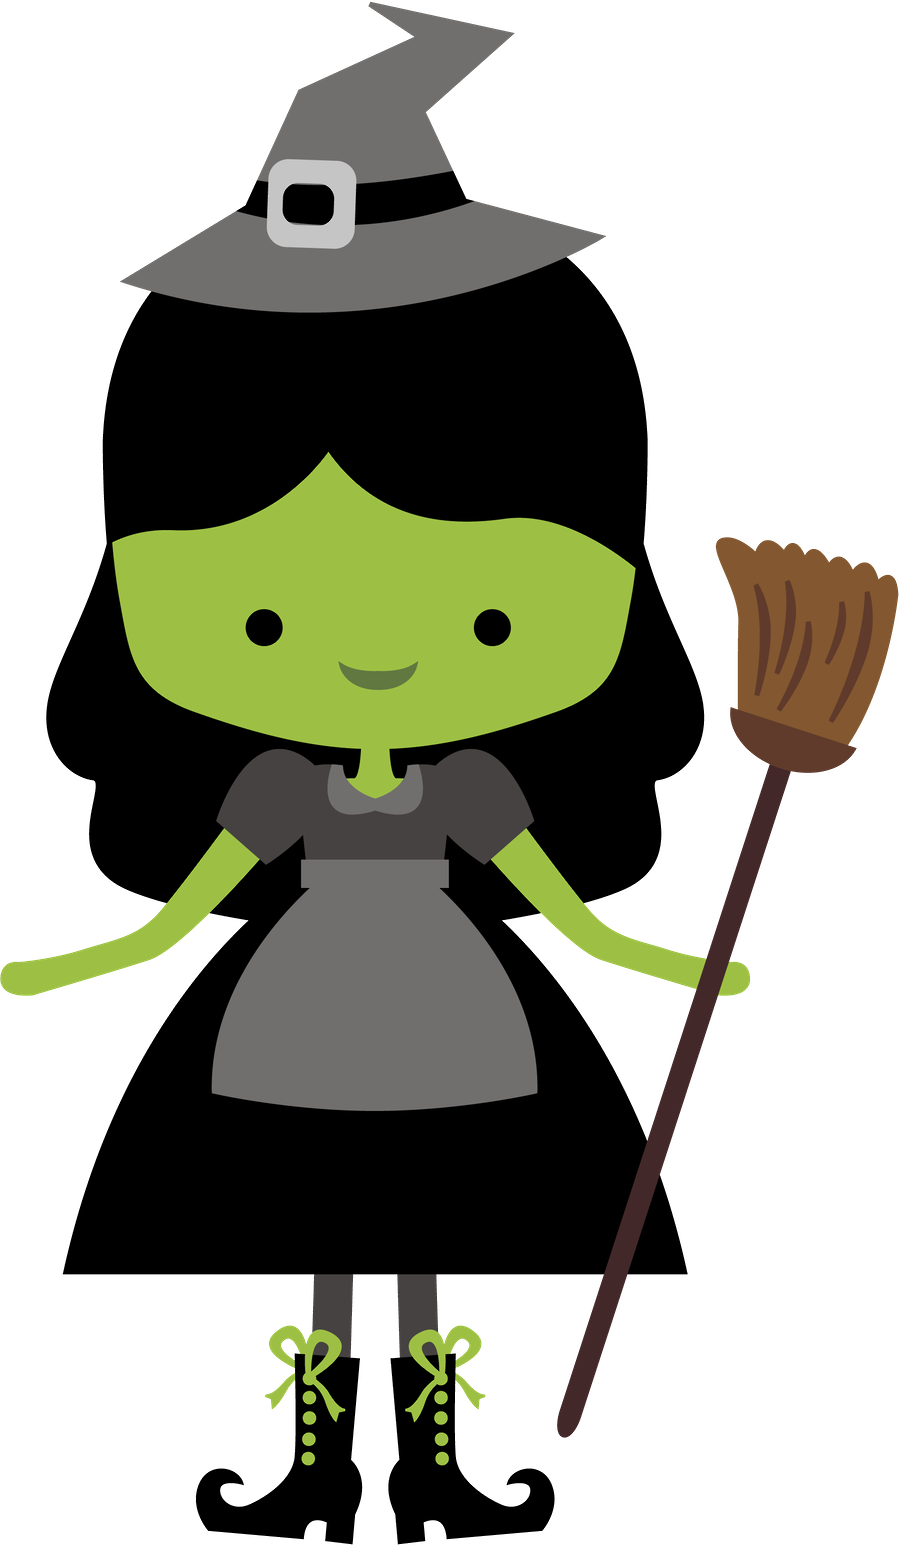 Wizard Of Oz clipart animated #12